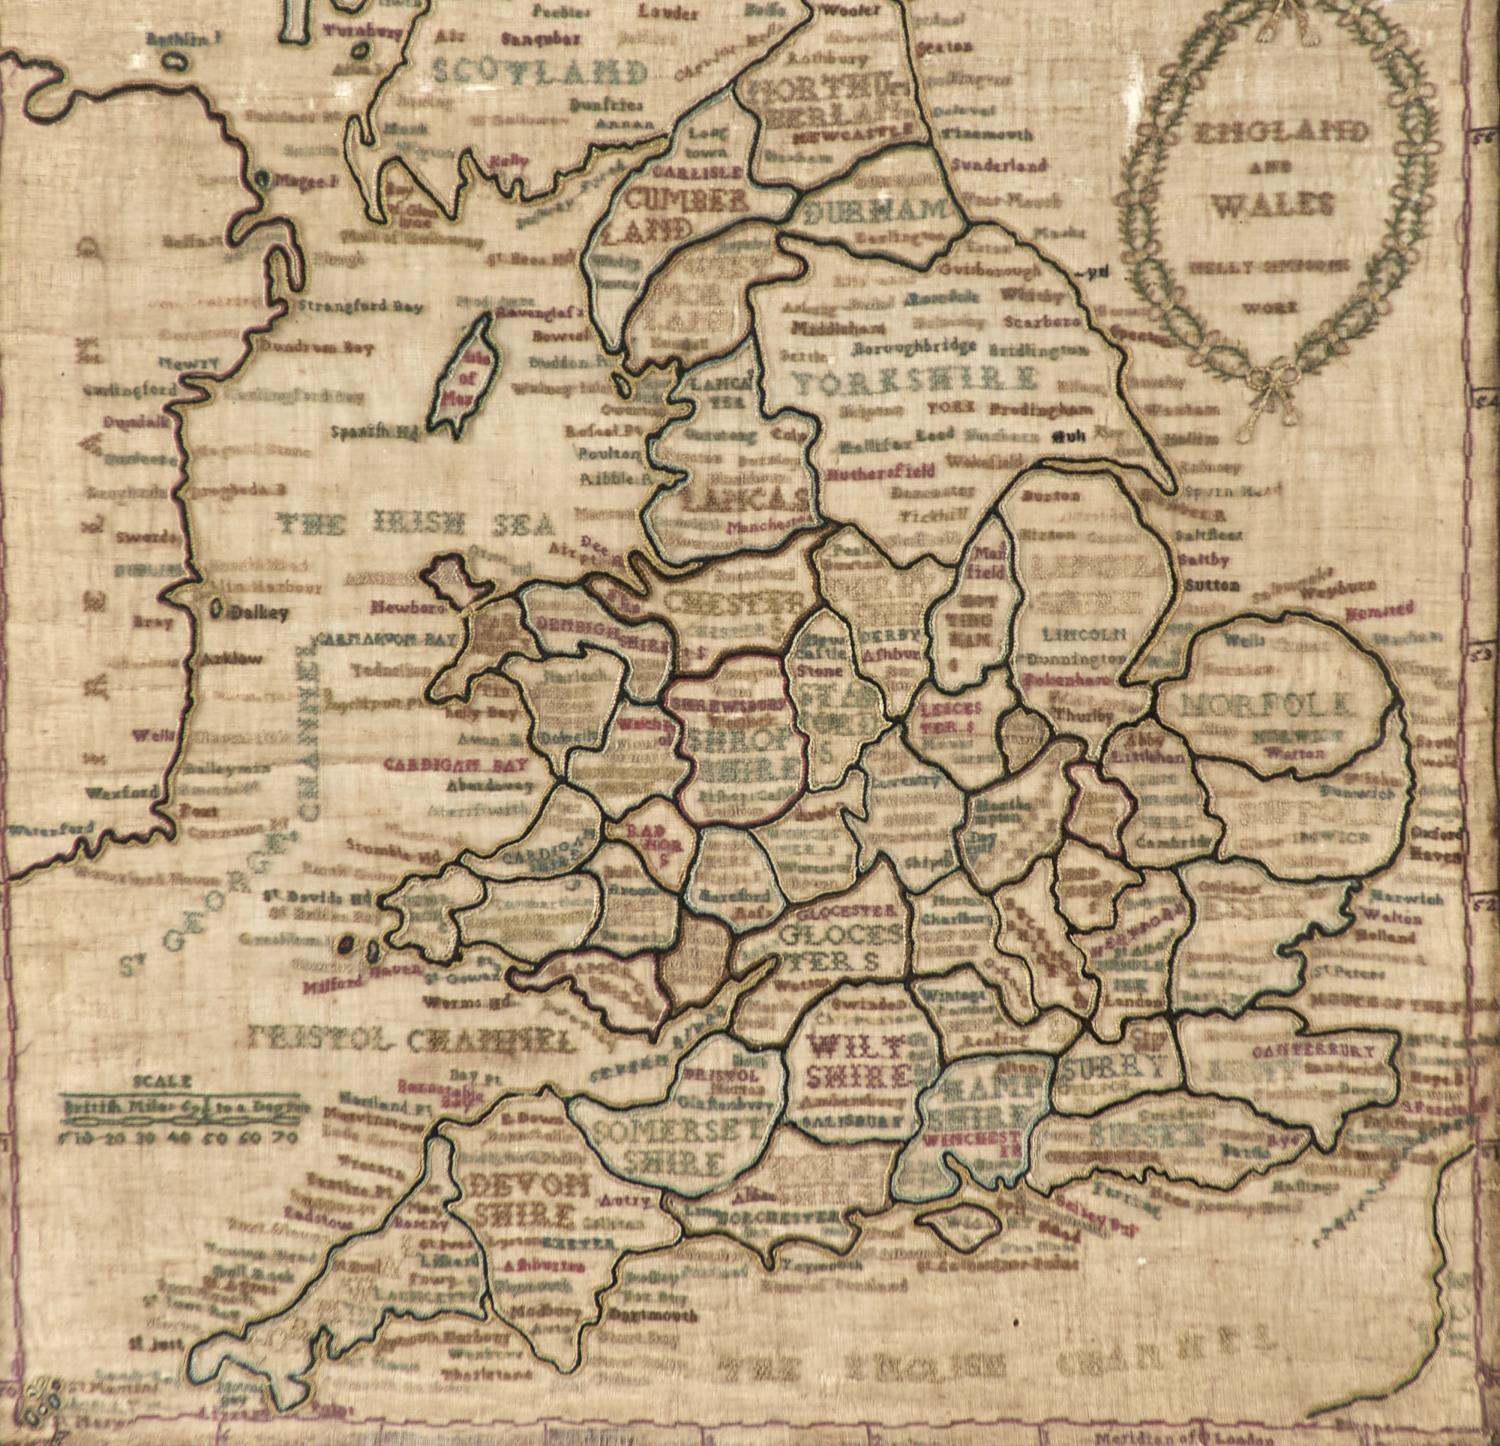 TWO ENGLISH LINEN MAP SAMPLERS OF ENDLAND AND WALES AND EUROPE, NELLIE SIMPSON'S WORK AND MARGARET - Image 4 of 4